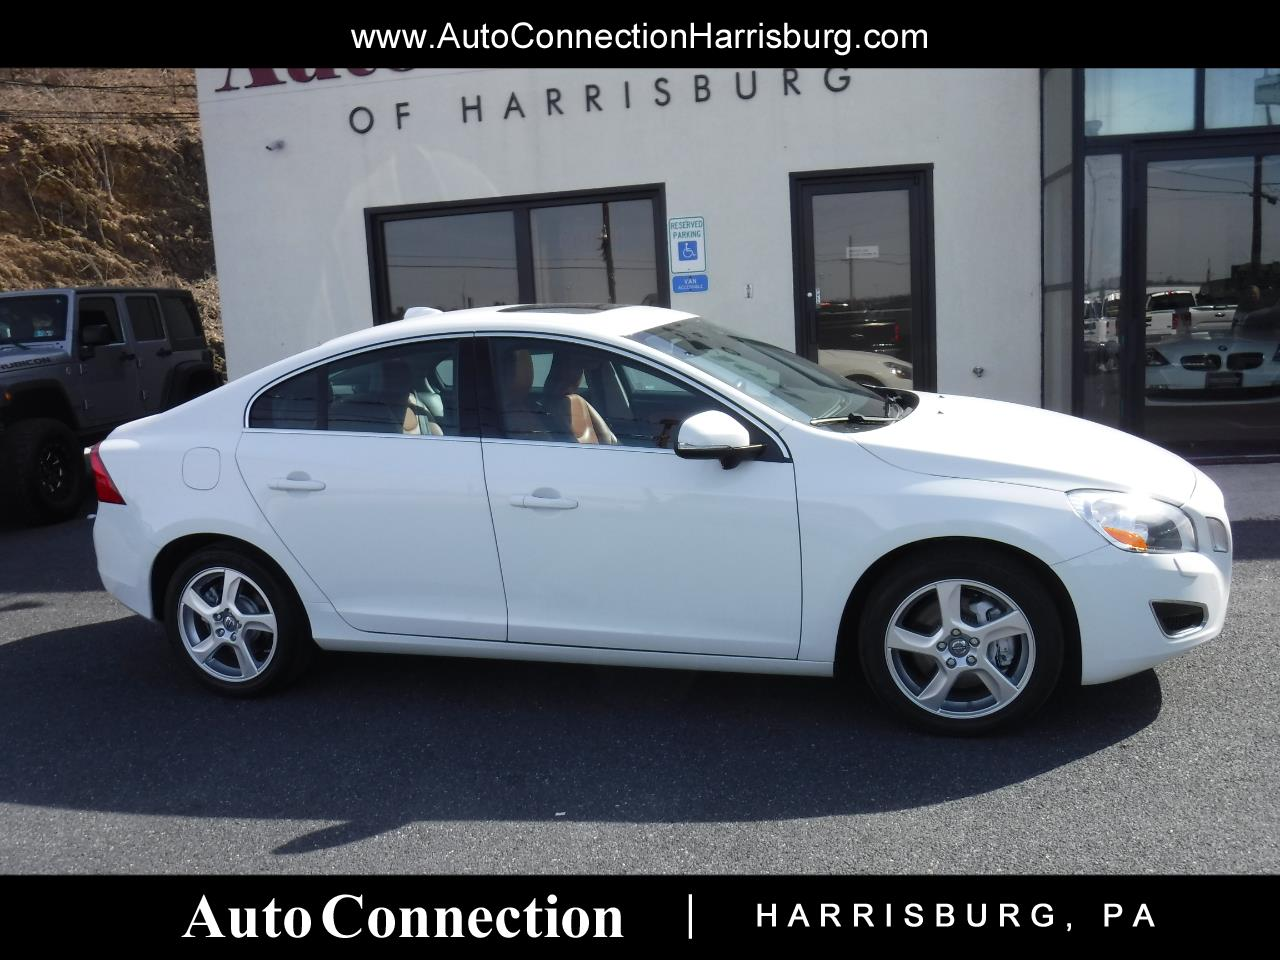 2012 Volvo S60 FWD 4dr Sdn T5